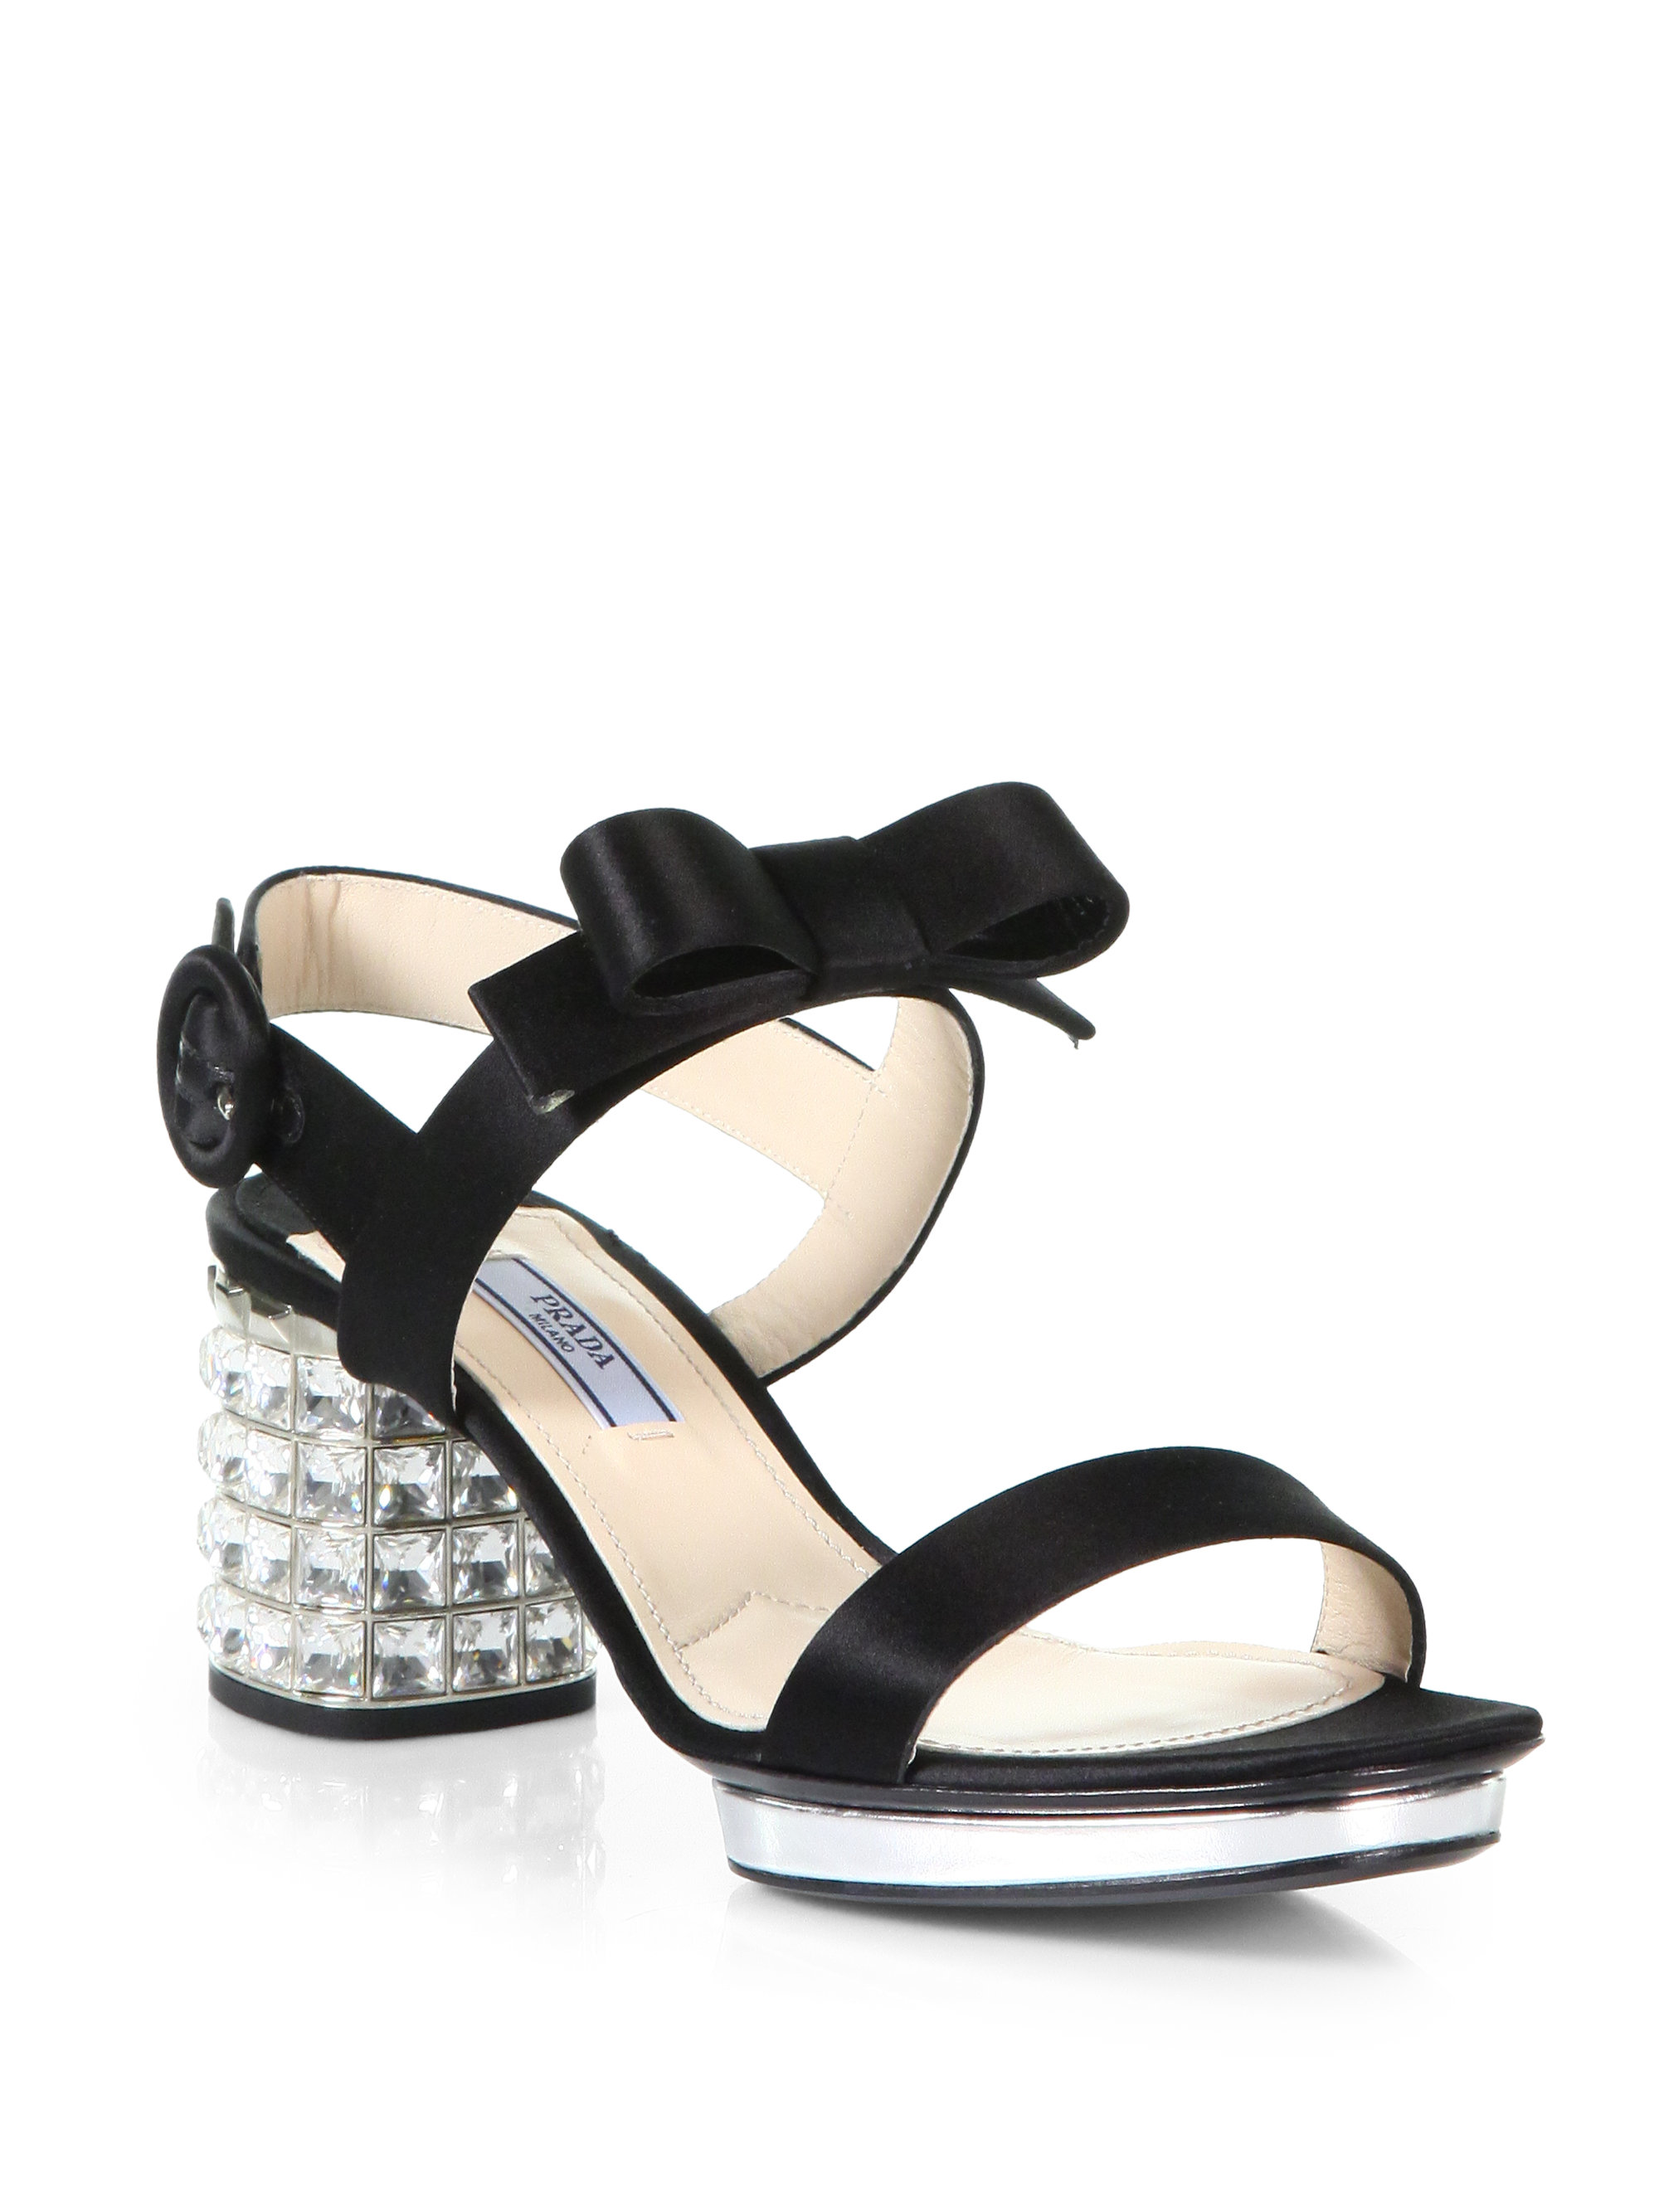 cheap sale latest collections sale cheapest price Prada Jeweled Bow Sandals shopping online high quality sale footaction sale with paypal EFaCOAJOsR